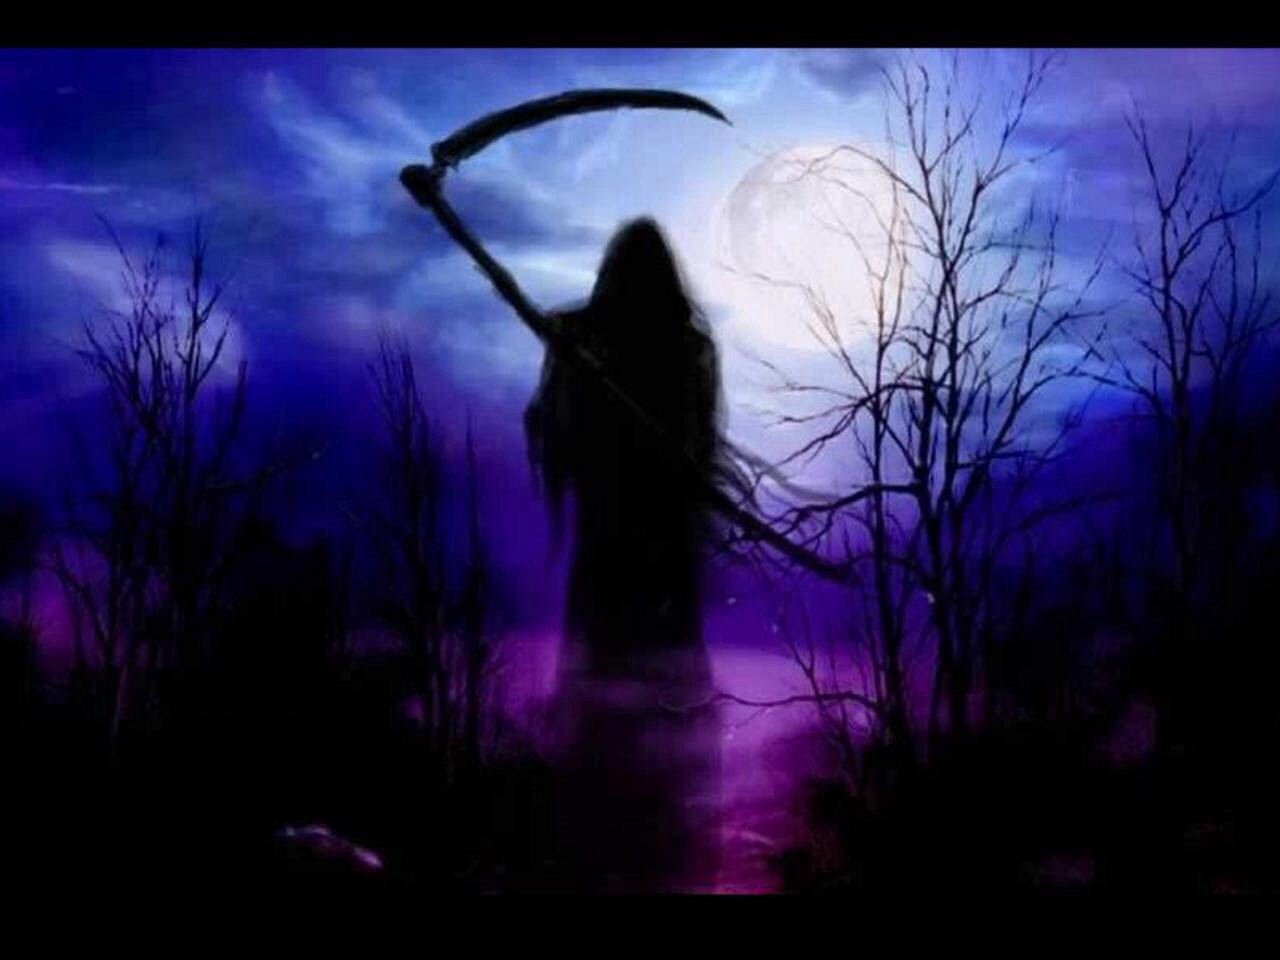 the grim reaper images Grim Wallpaper HD wallpaper and ...